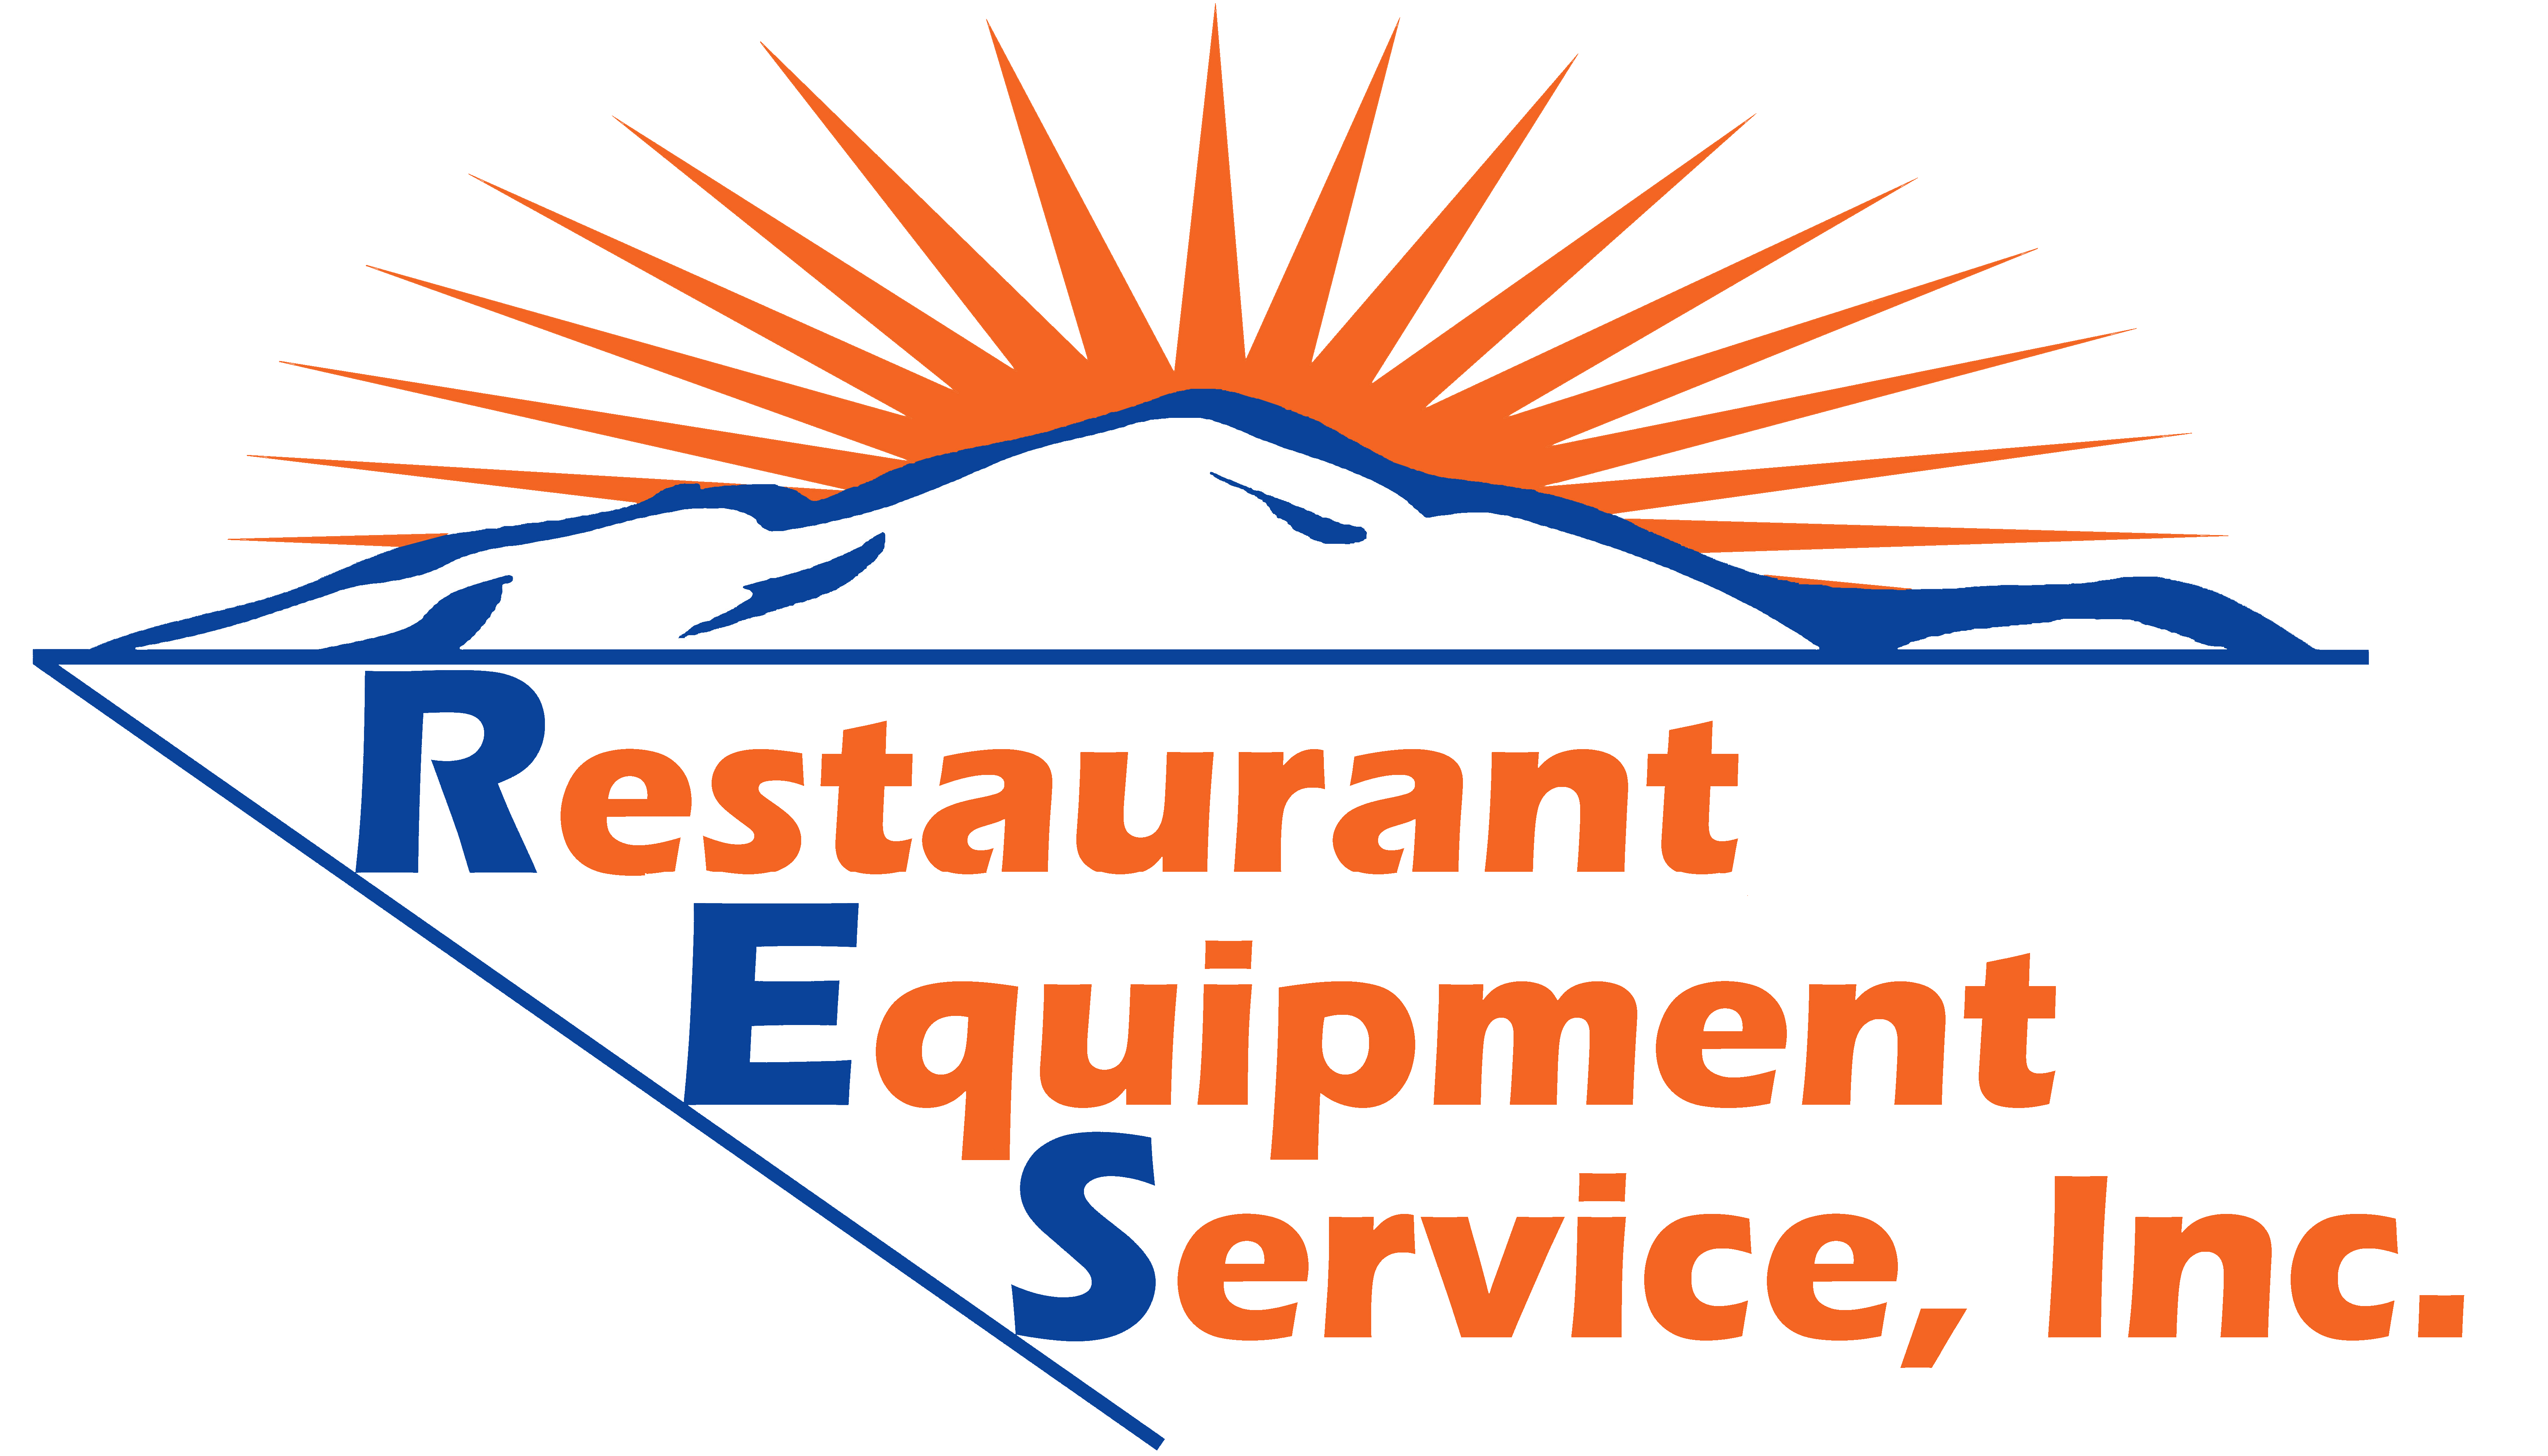 Restaurant Equipment Service – Restaurant Equipment Service and Repair, Colorado Springs, Cooking Equipment, Kitchen, Refrigeration, HVAC, technicians